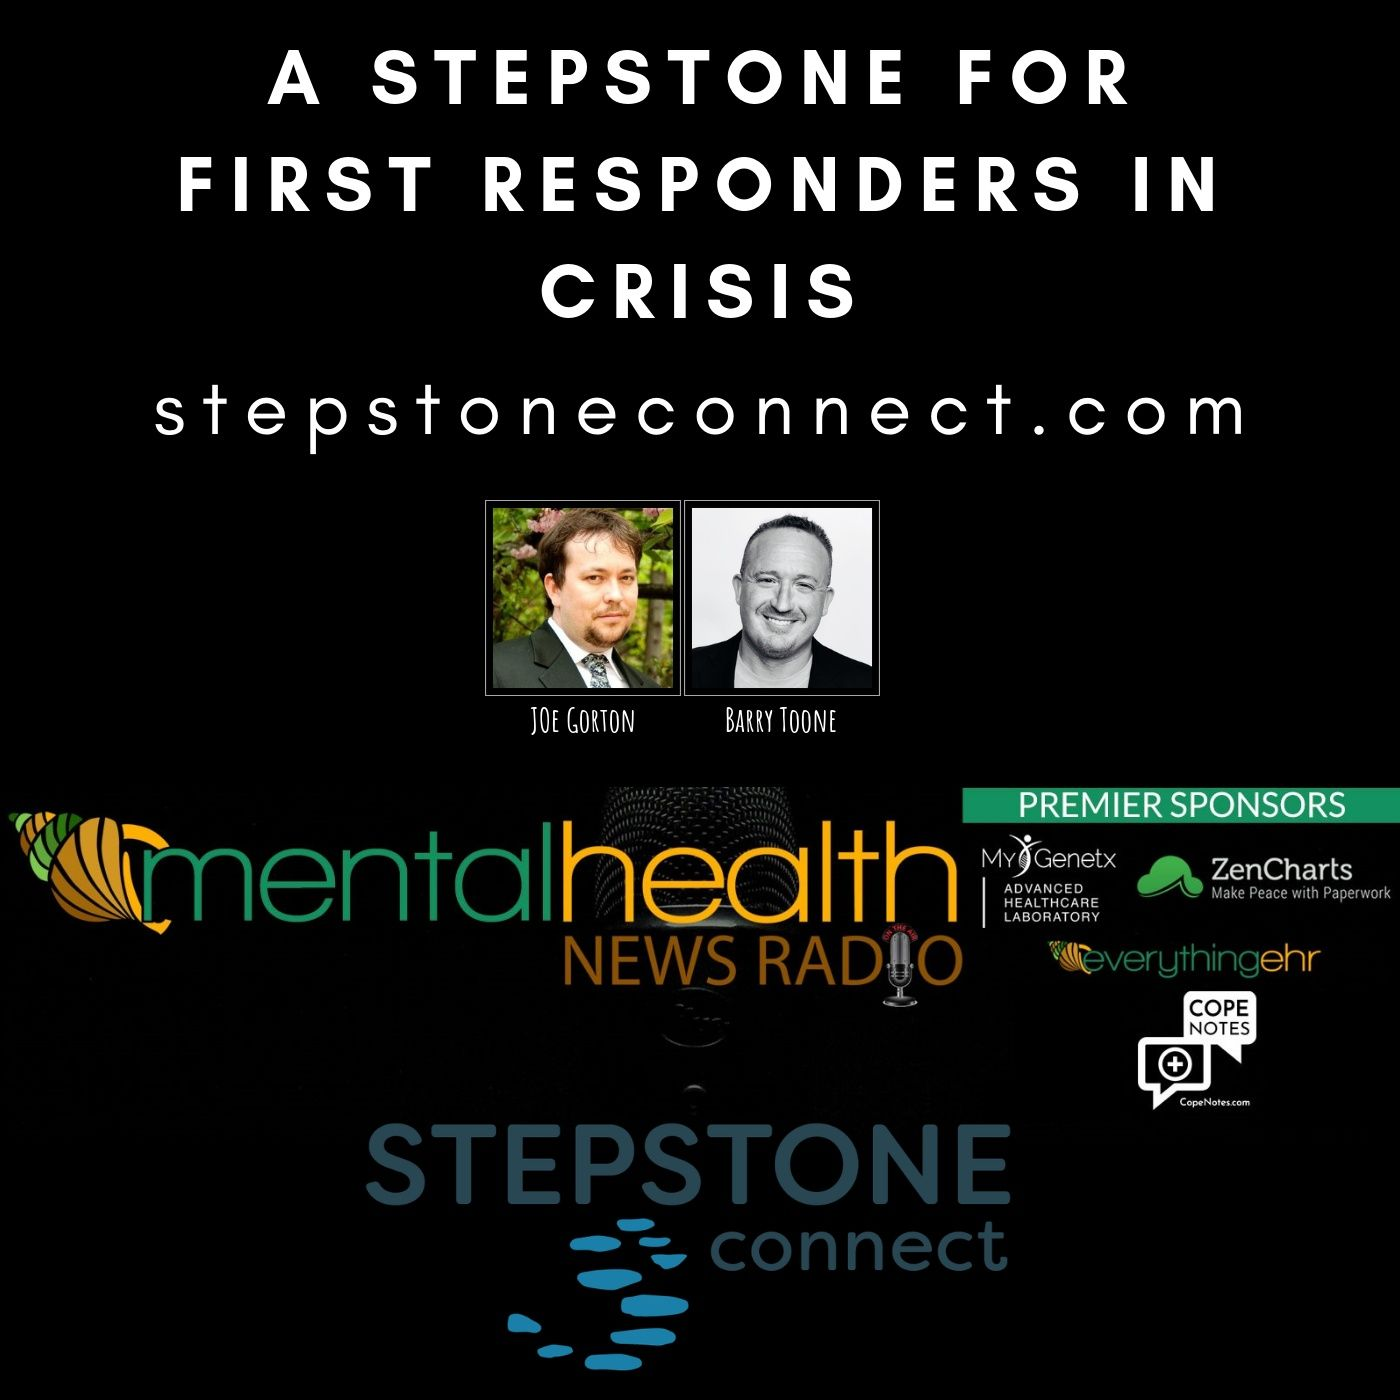 Mental Health News Radio - A Stepstone for First Responders in Crisis with Joe Gorton and Barry Toone